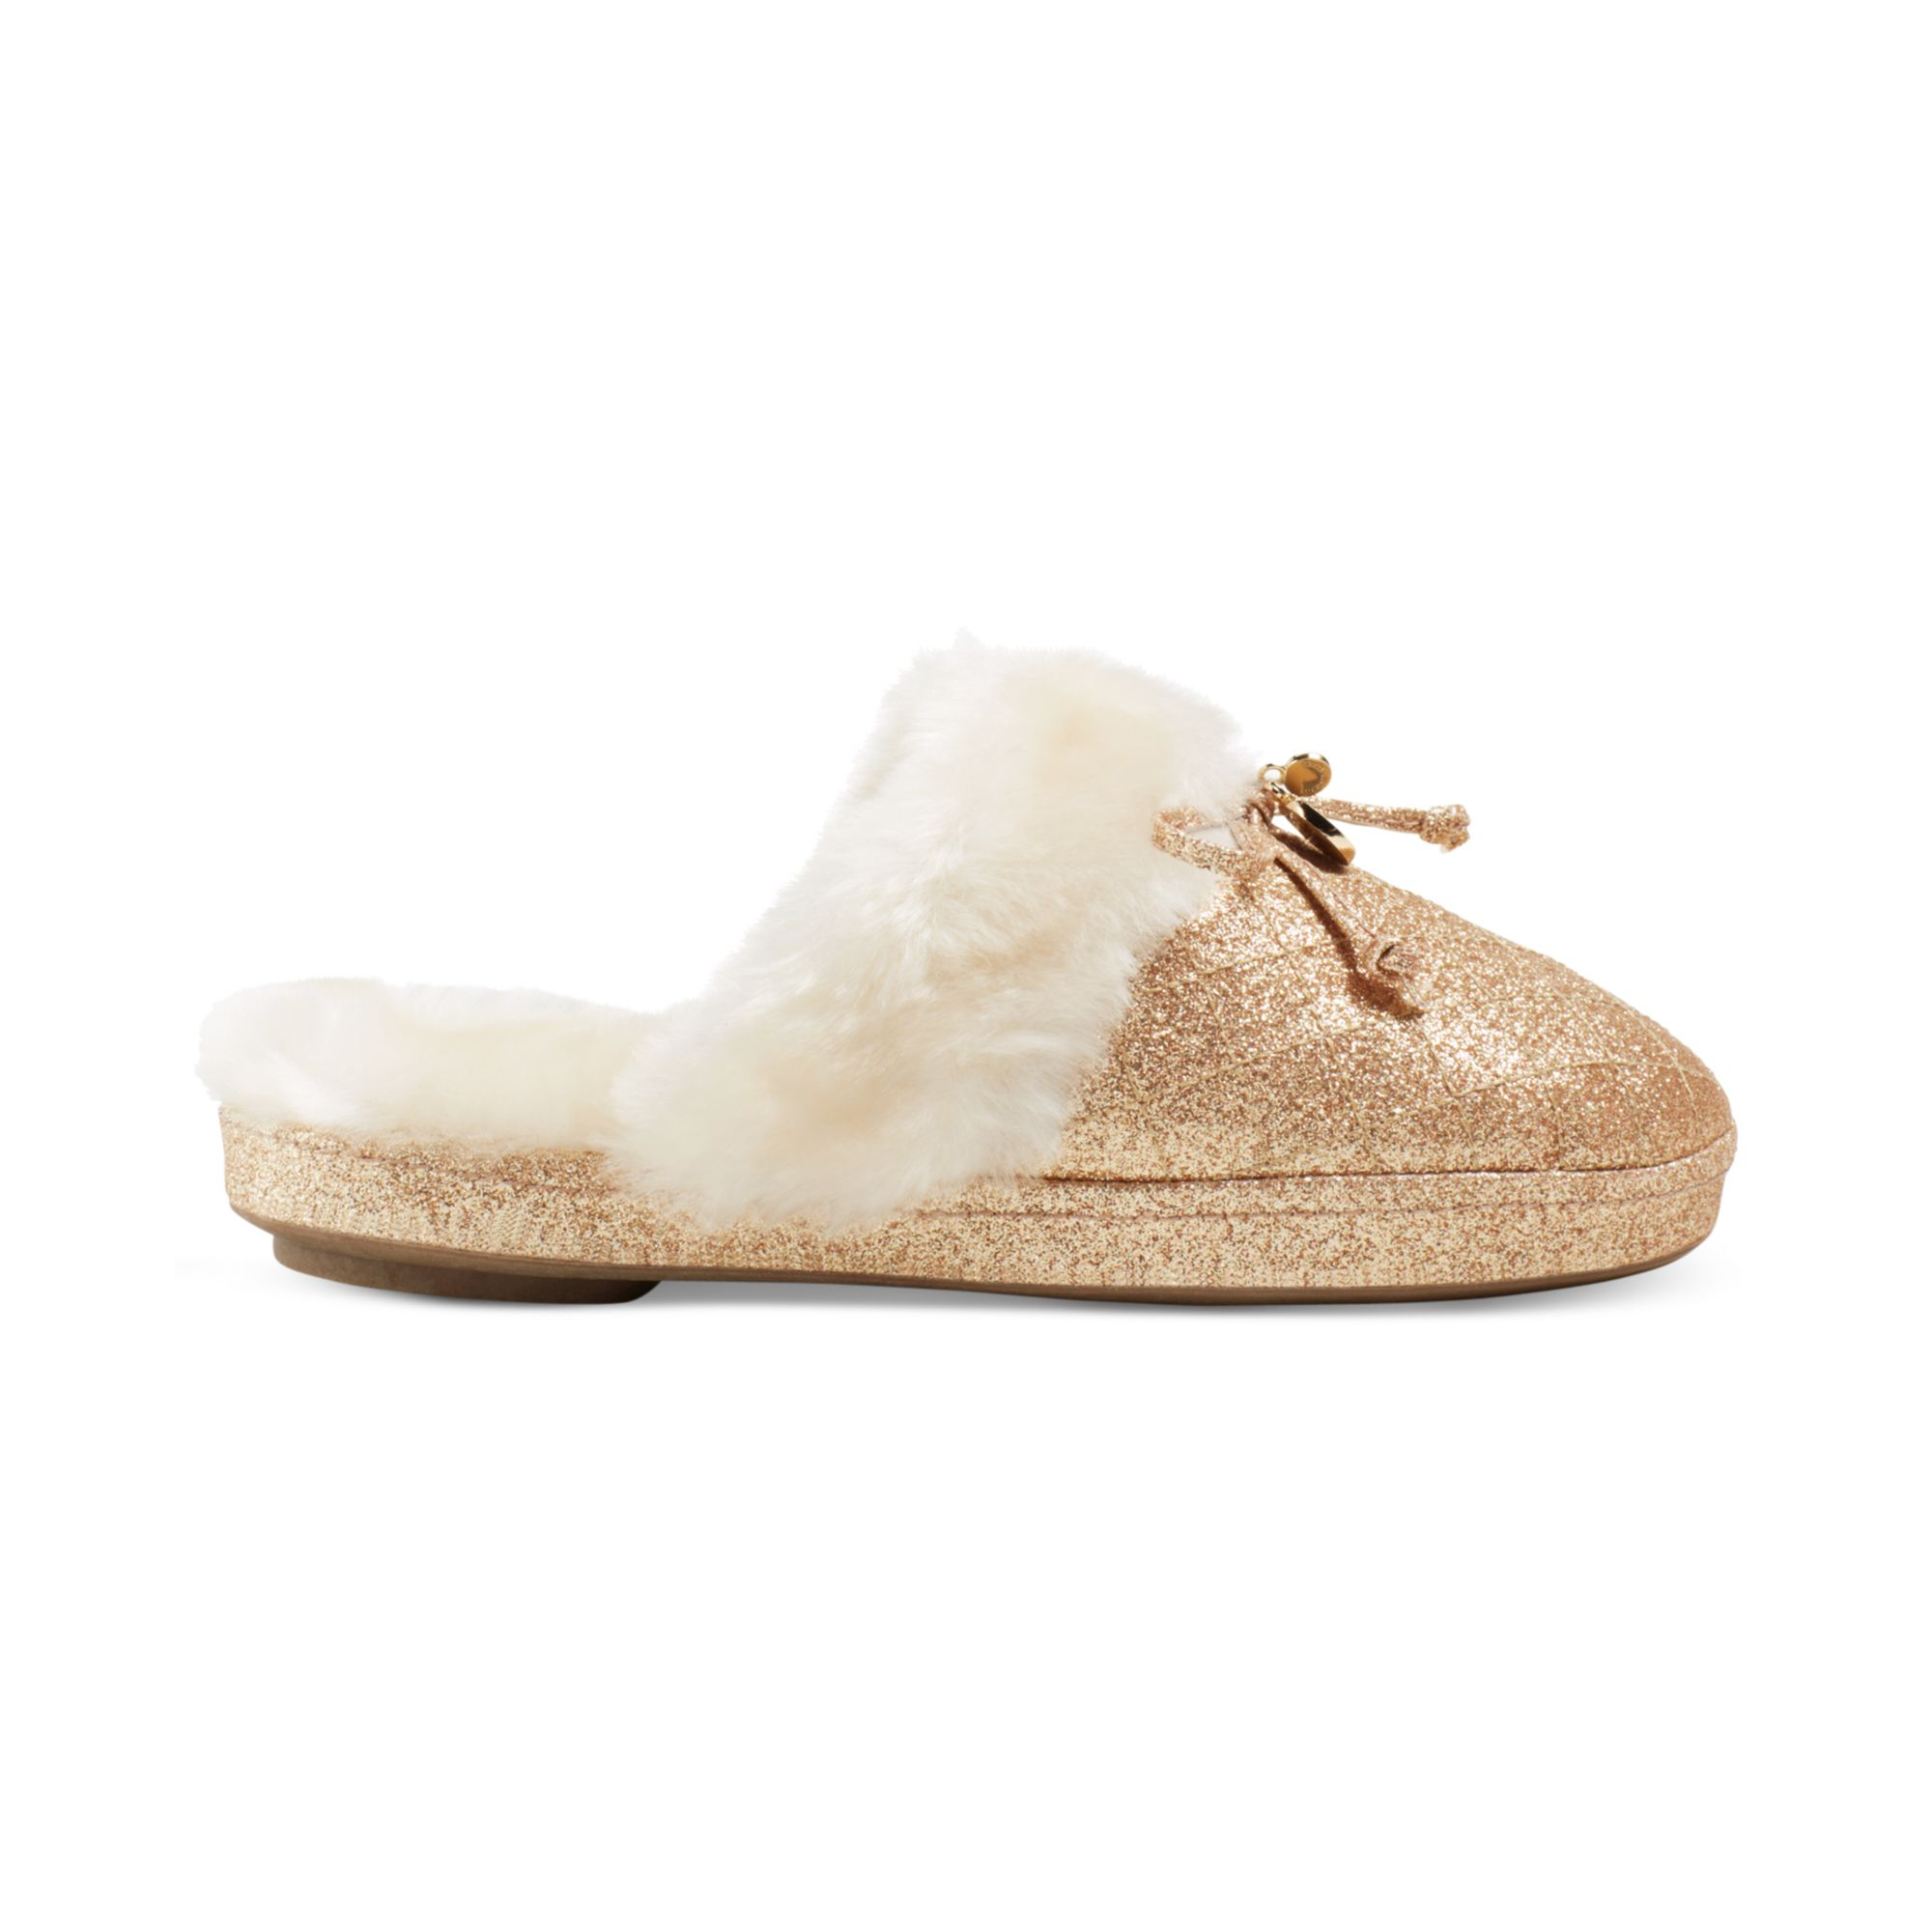 Lyst - Michael Kors Faux-Fur Slippers in Metallic